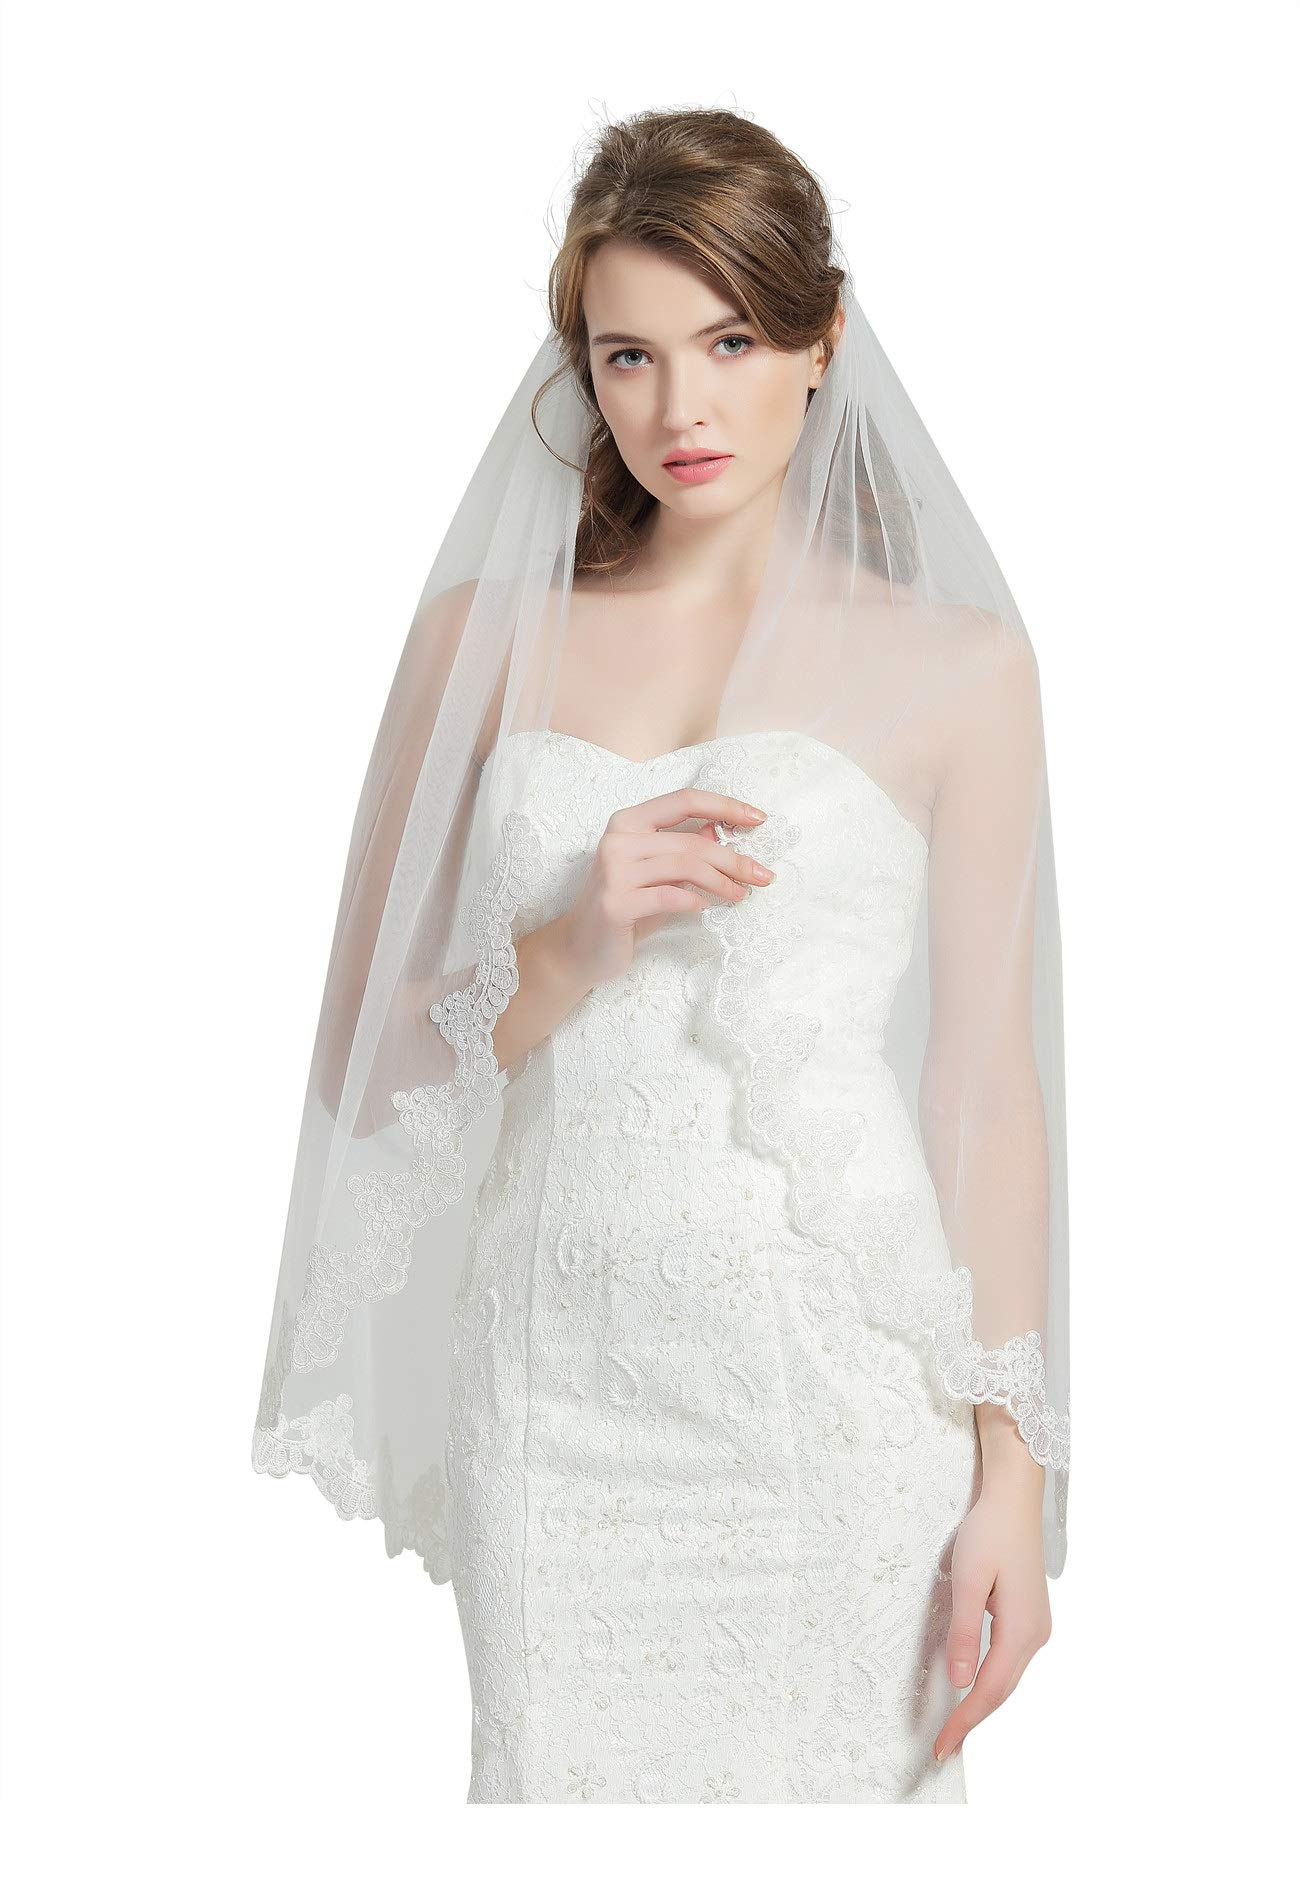 Wedding Bridal Veil with Comb 1 Tier Lace Applique Edge Fingertip Length 41'' V82 Ivory